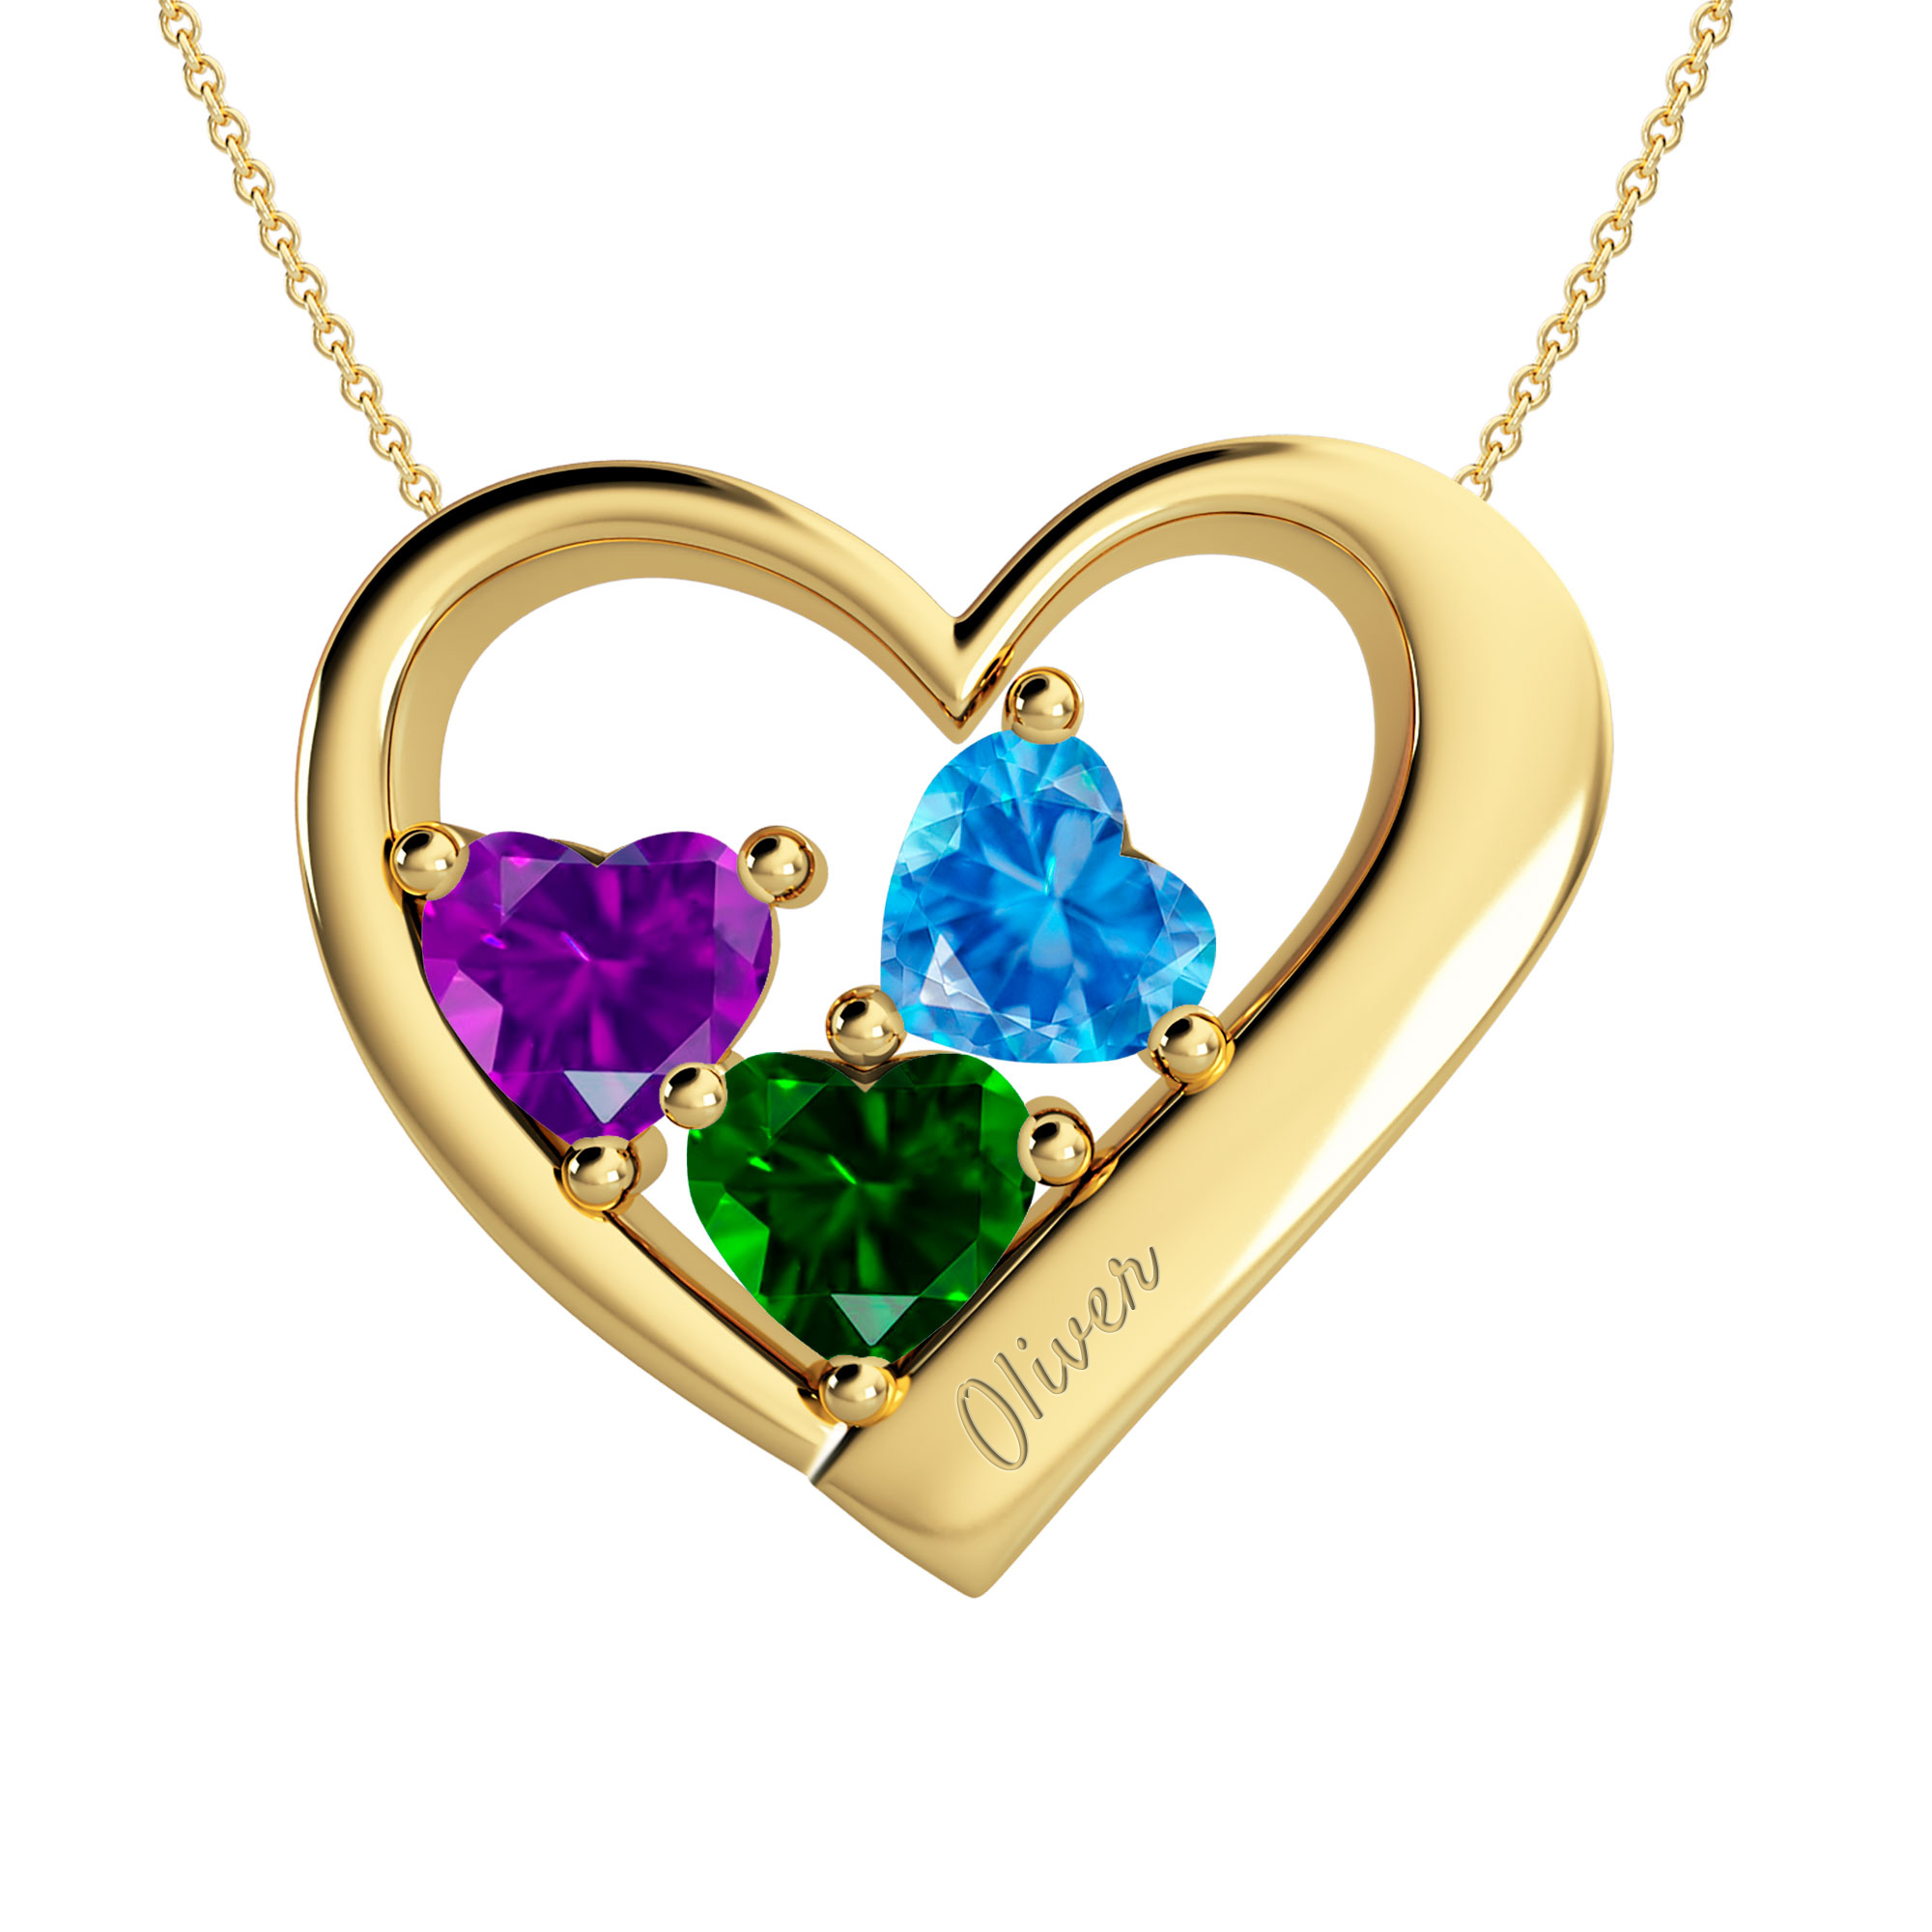 Mother's Heart Custom Birthstone Engravable Family Necklace (2-3 Gemstones)